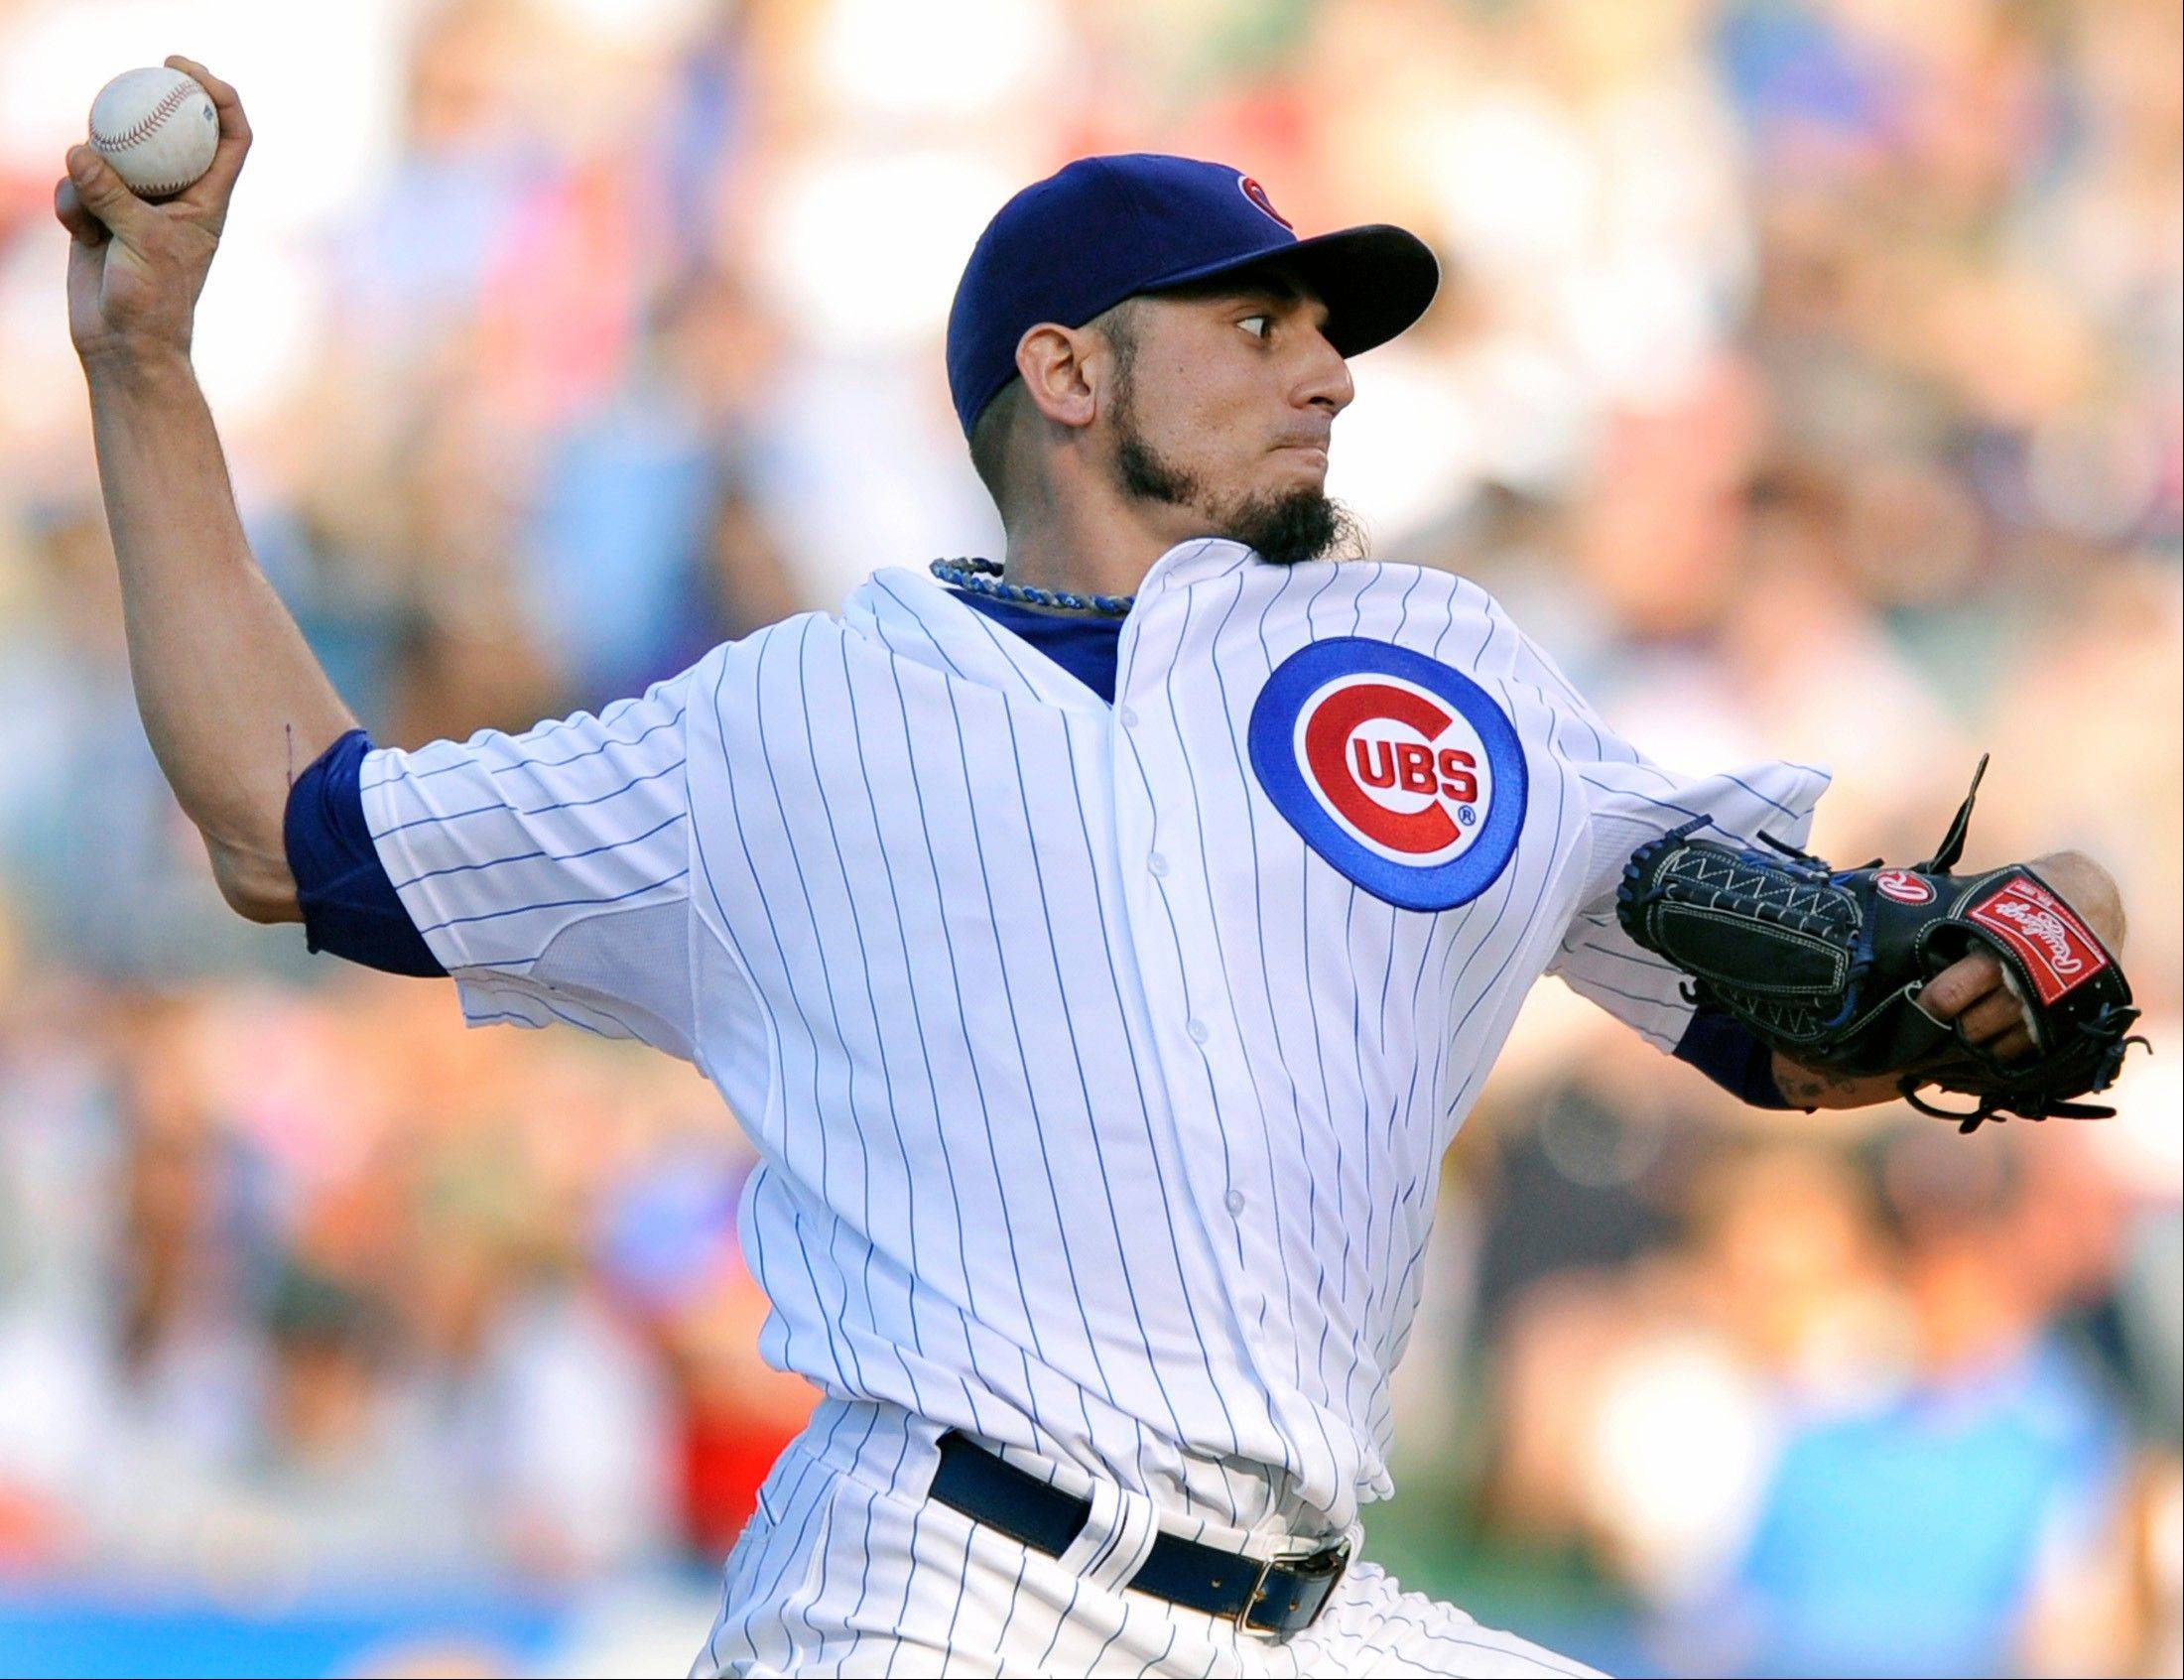 Matt Garza pitched the Cubs to a 6-4 victory over the St. Louis Cardinals Saturday at Wrigley Field.